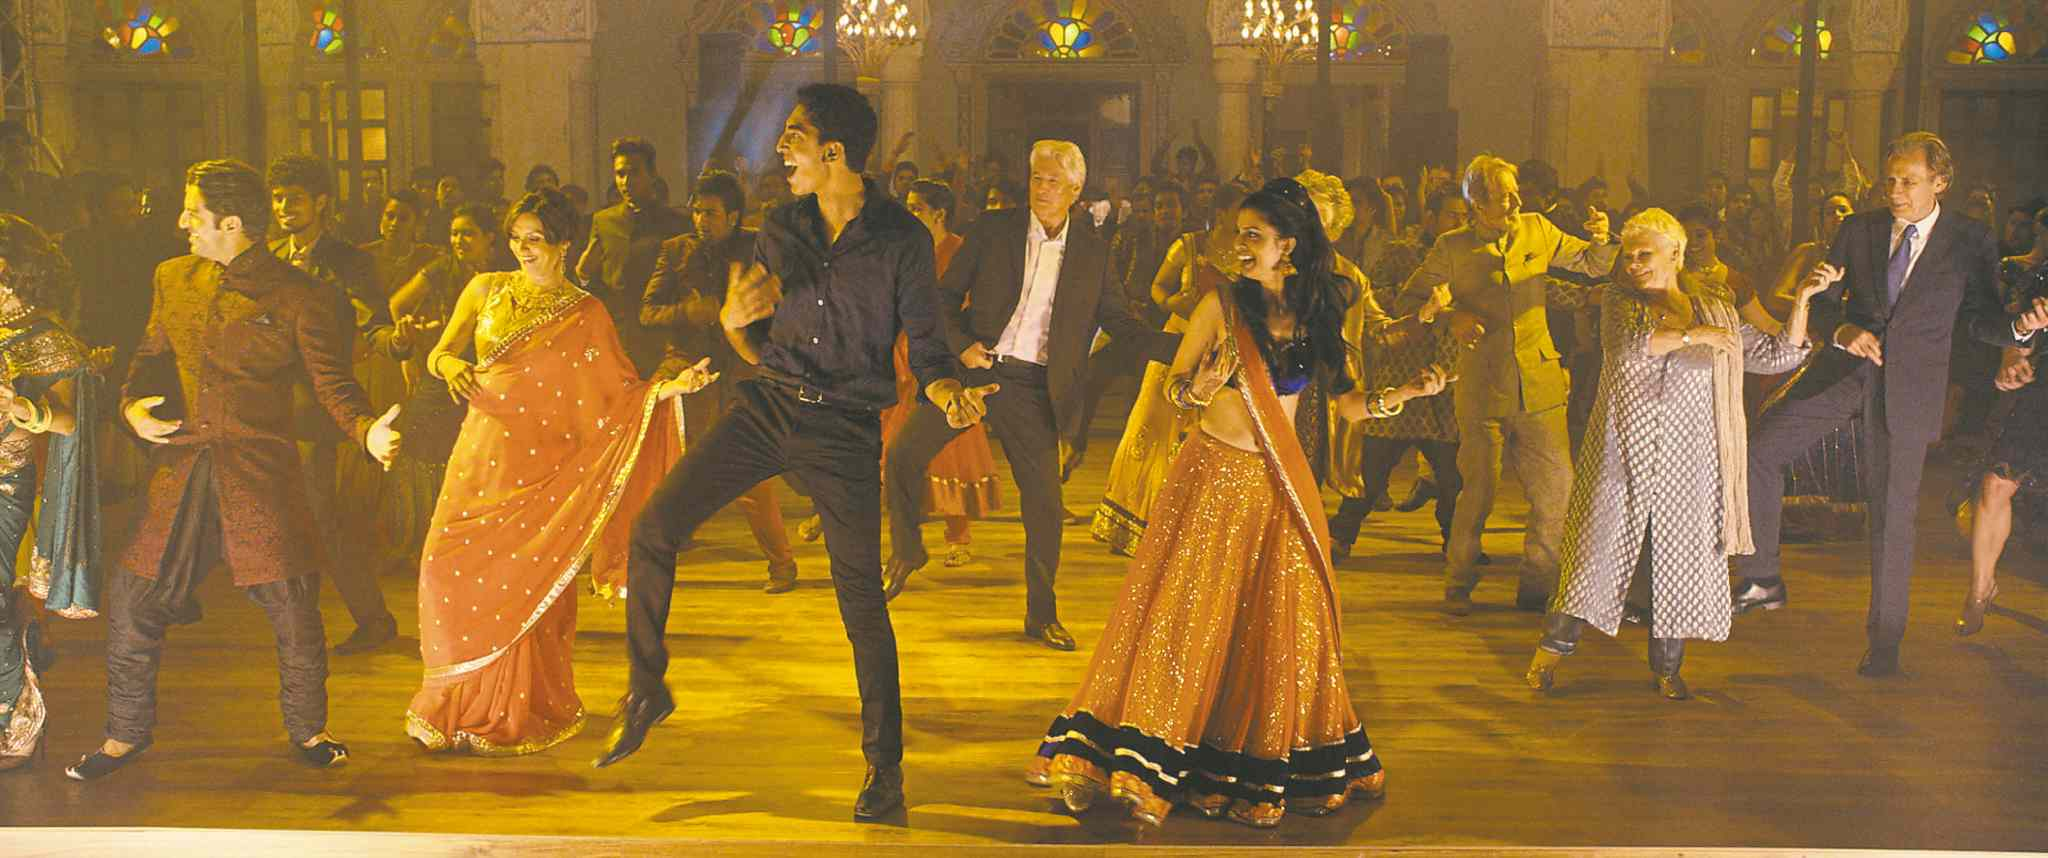 Dev Patel and Tina Desai (foreground) in colourful, lively The Second Best Exotic Marigold Hotel.